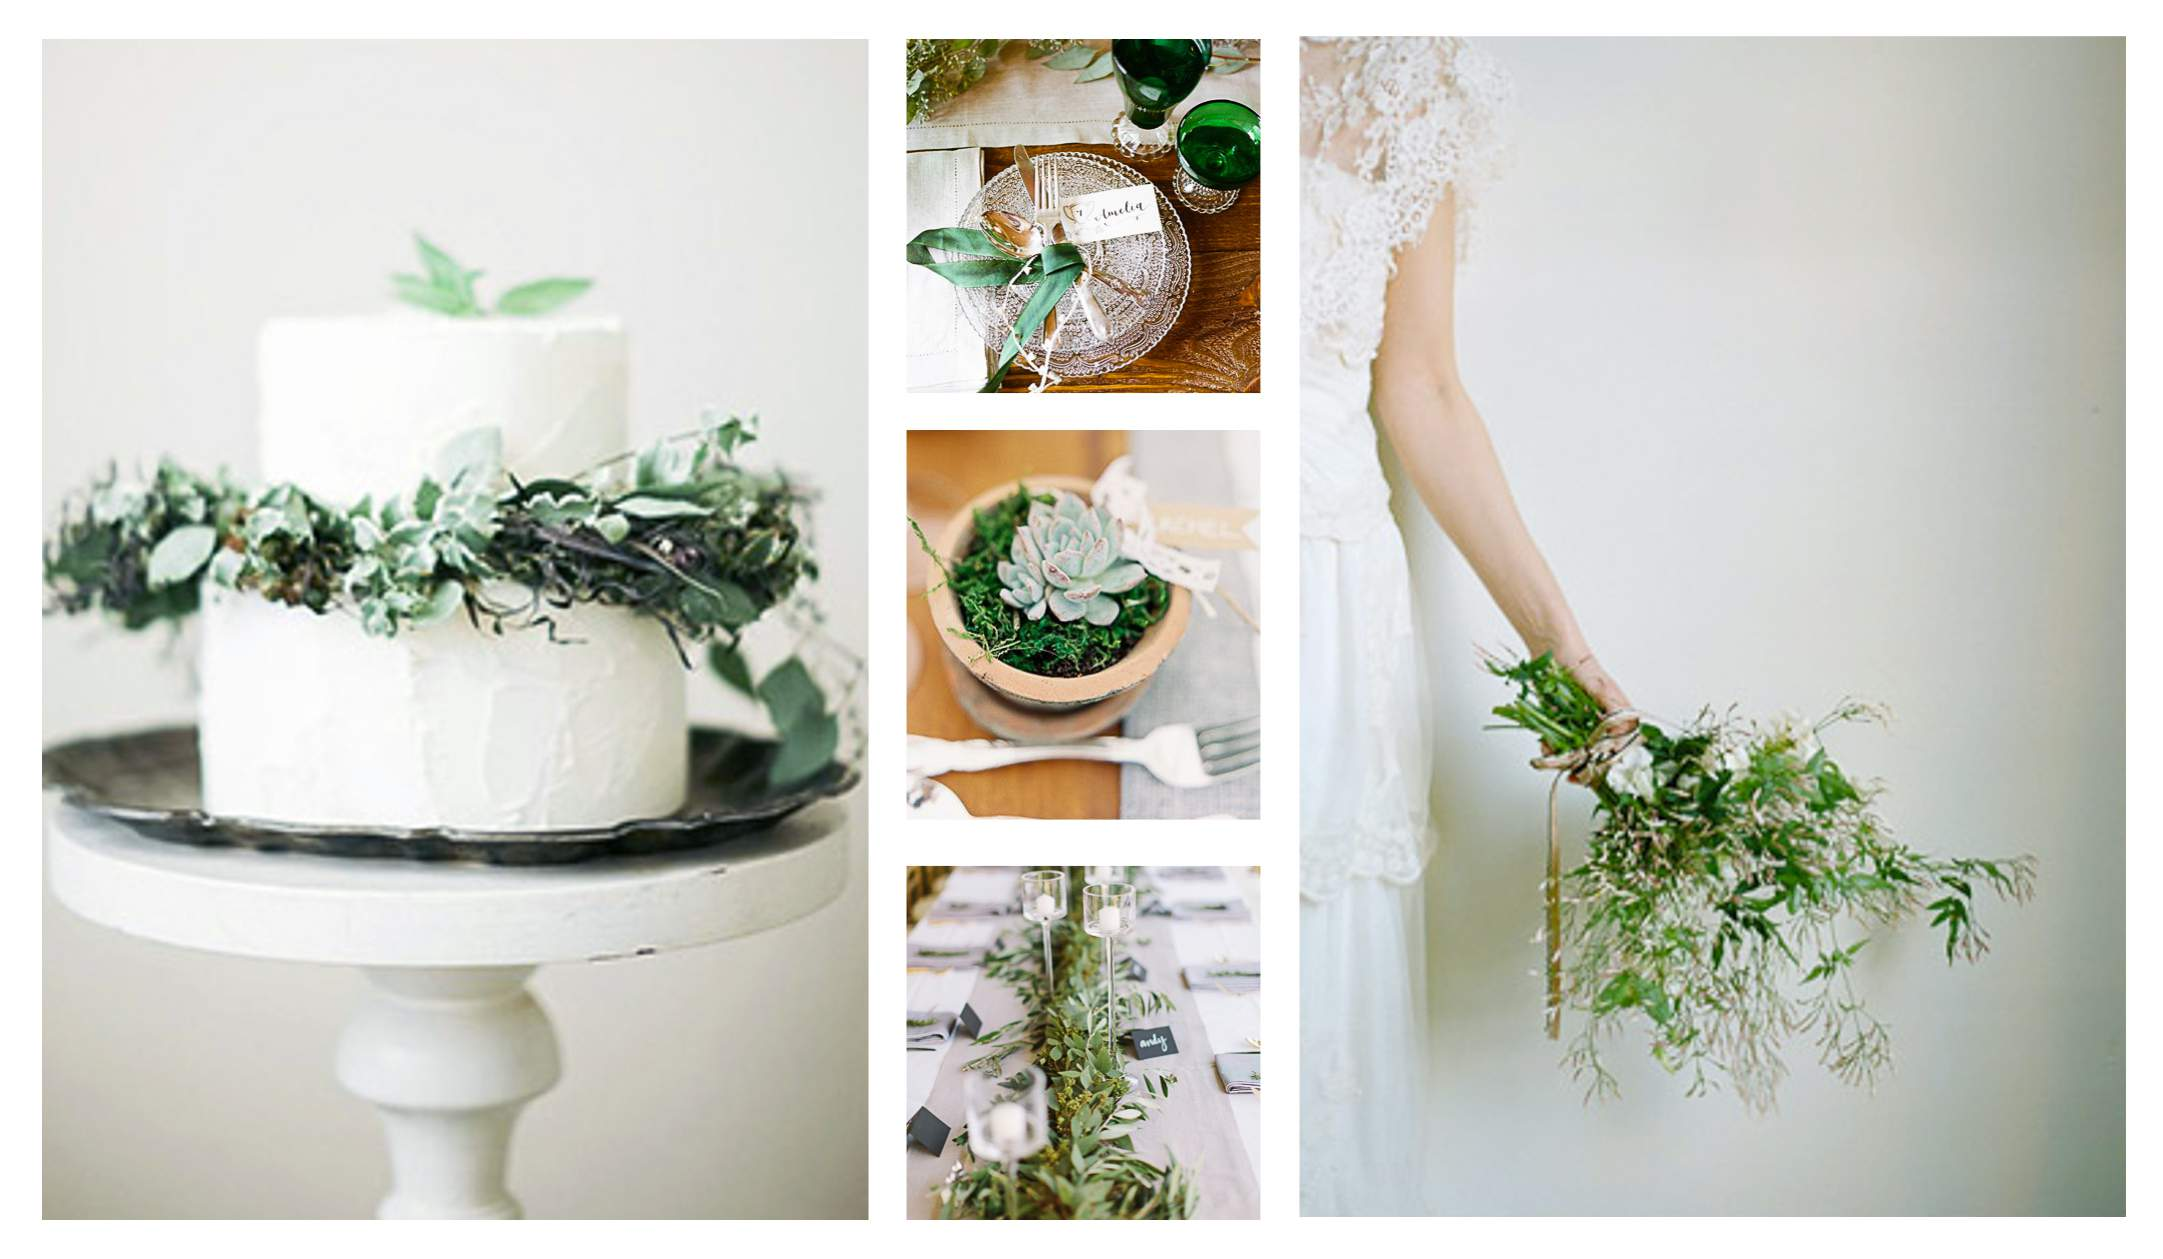 Matrimonio In Verde E Bianco : Matrimonio in verde patch wedding